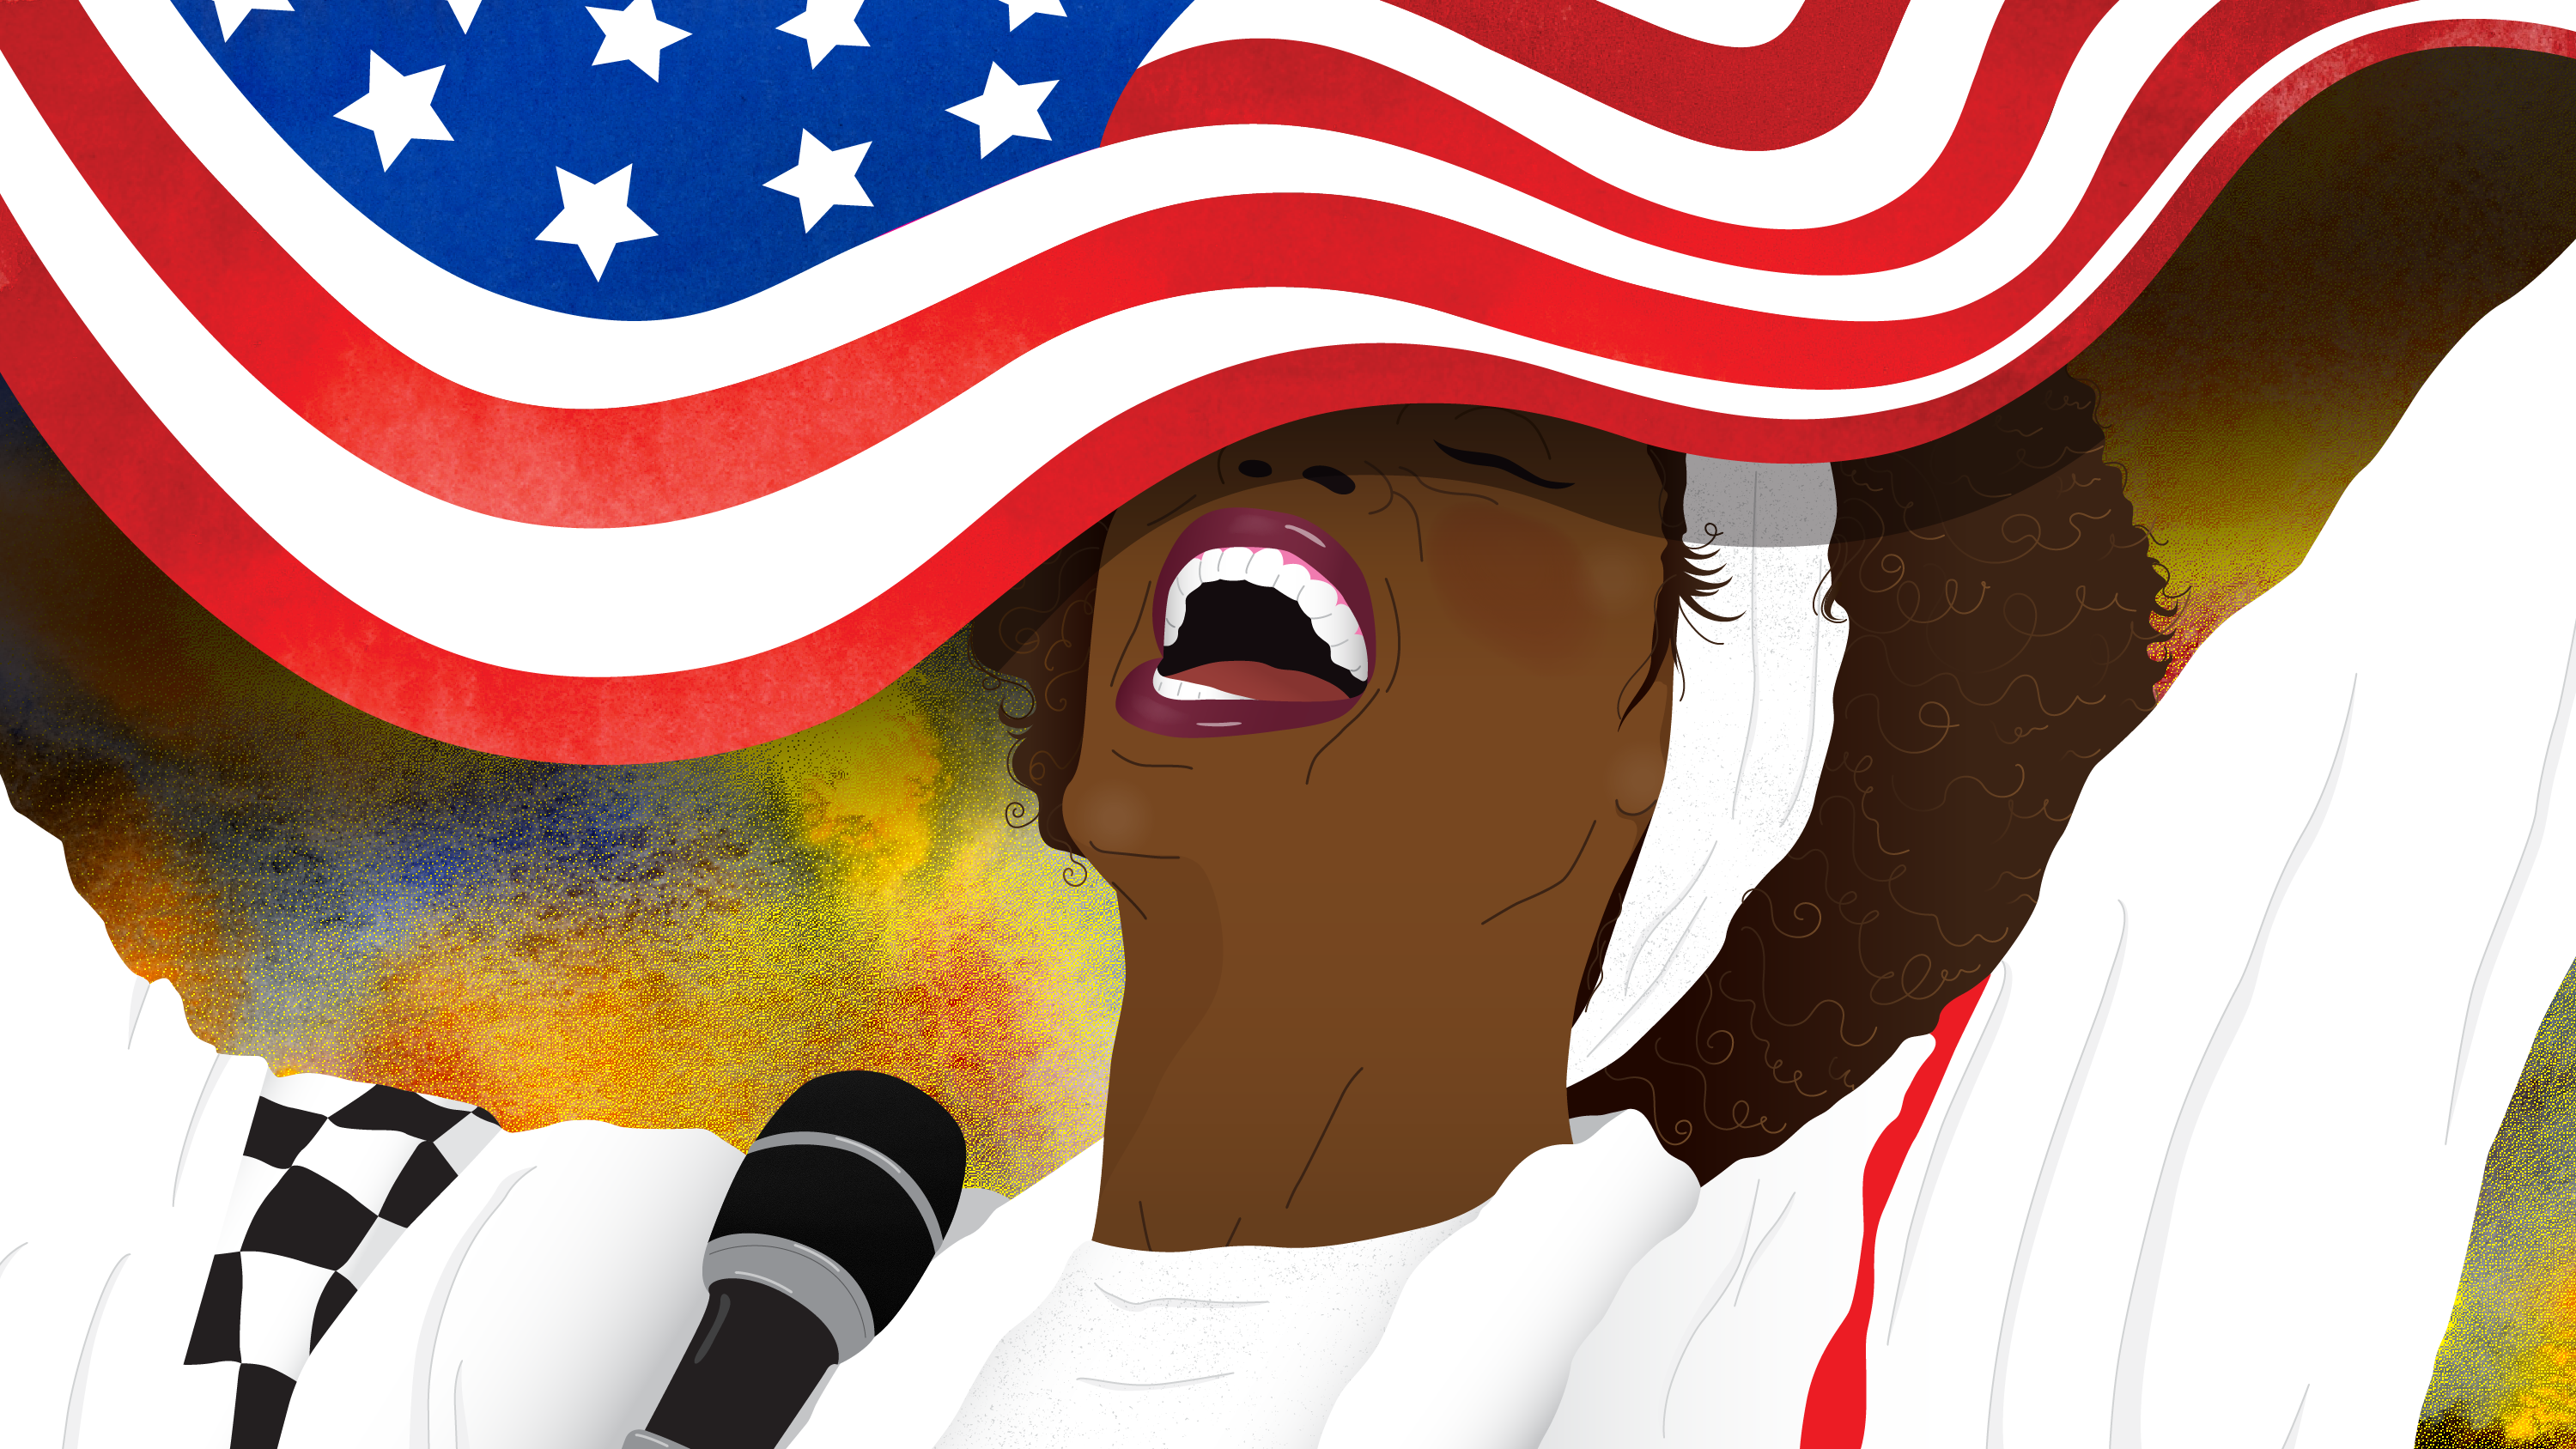 Illustration of Whitney Houston singing with the top half of her face obscured by a waving American flag.